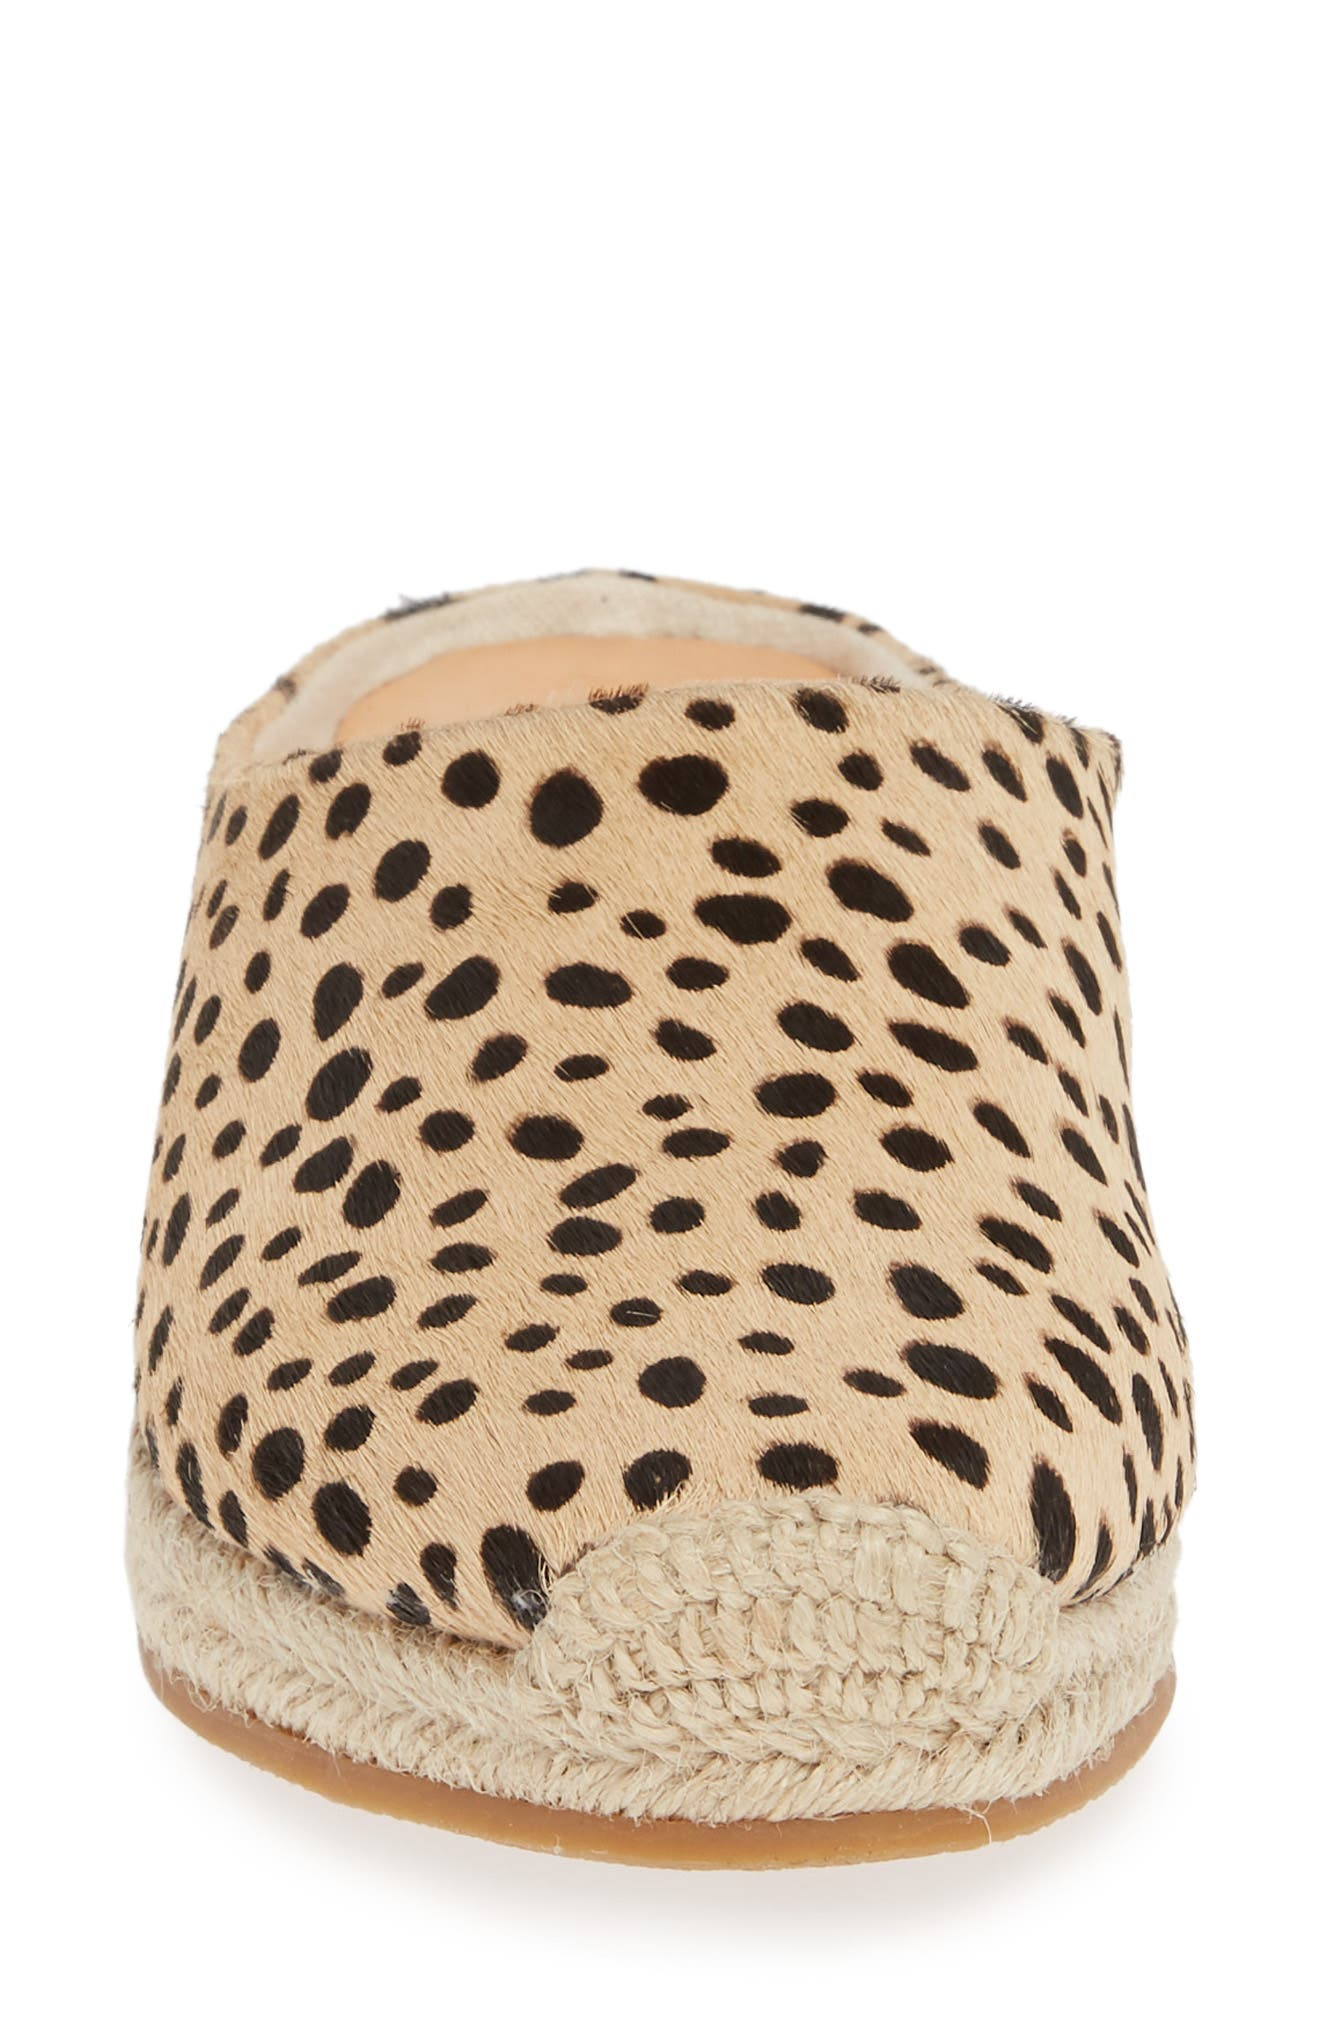 DOLCE VITA, Brandi Genuine Calf Hair Espadrille Mule, Alternate thumbnail 4, color, LEOPARD PRINT CALF HAIR